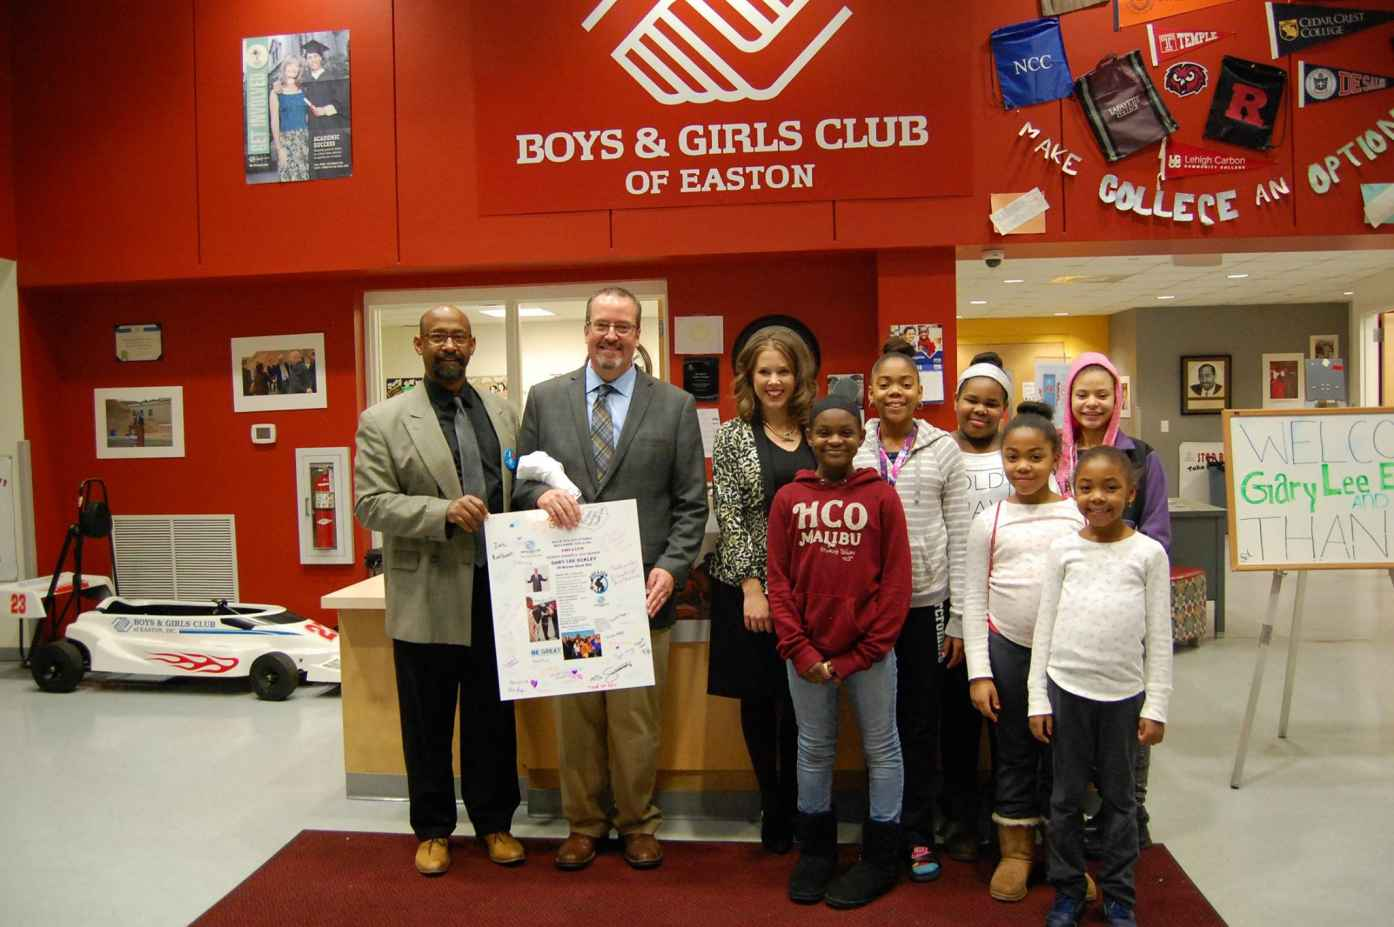 Gary Lee at Boys and Girls Club in Easton